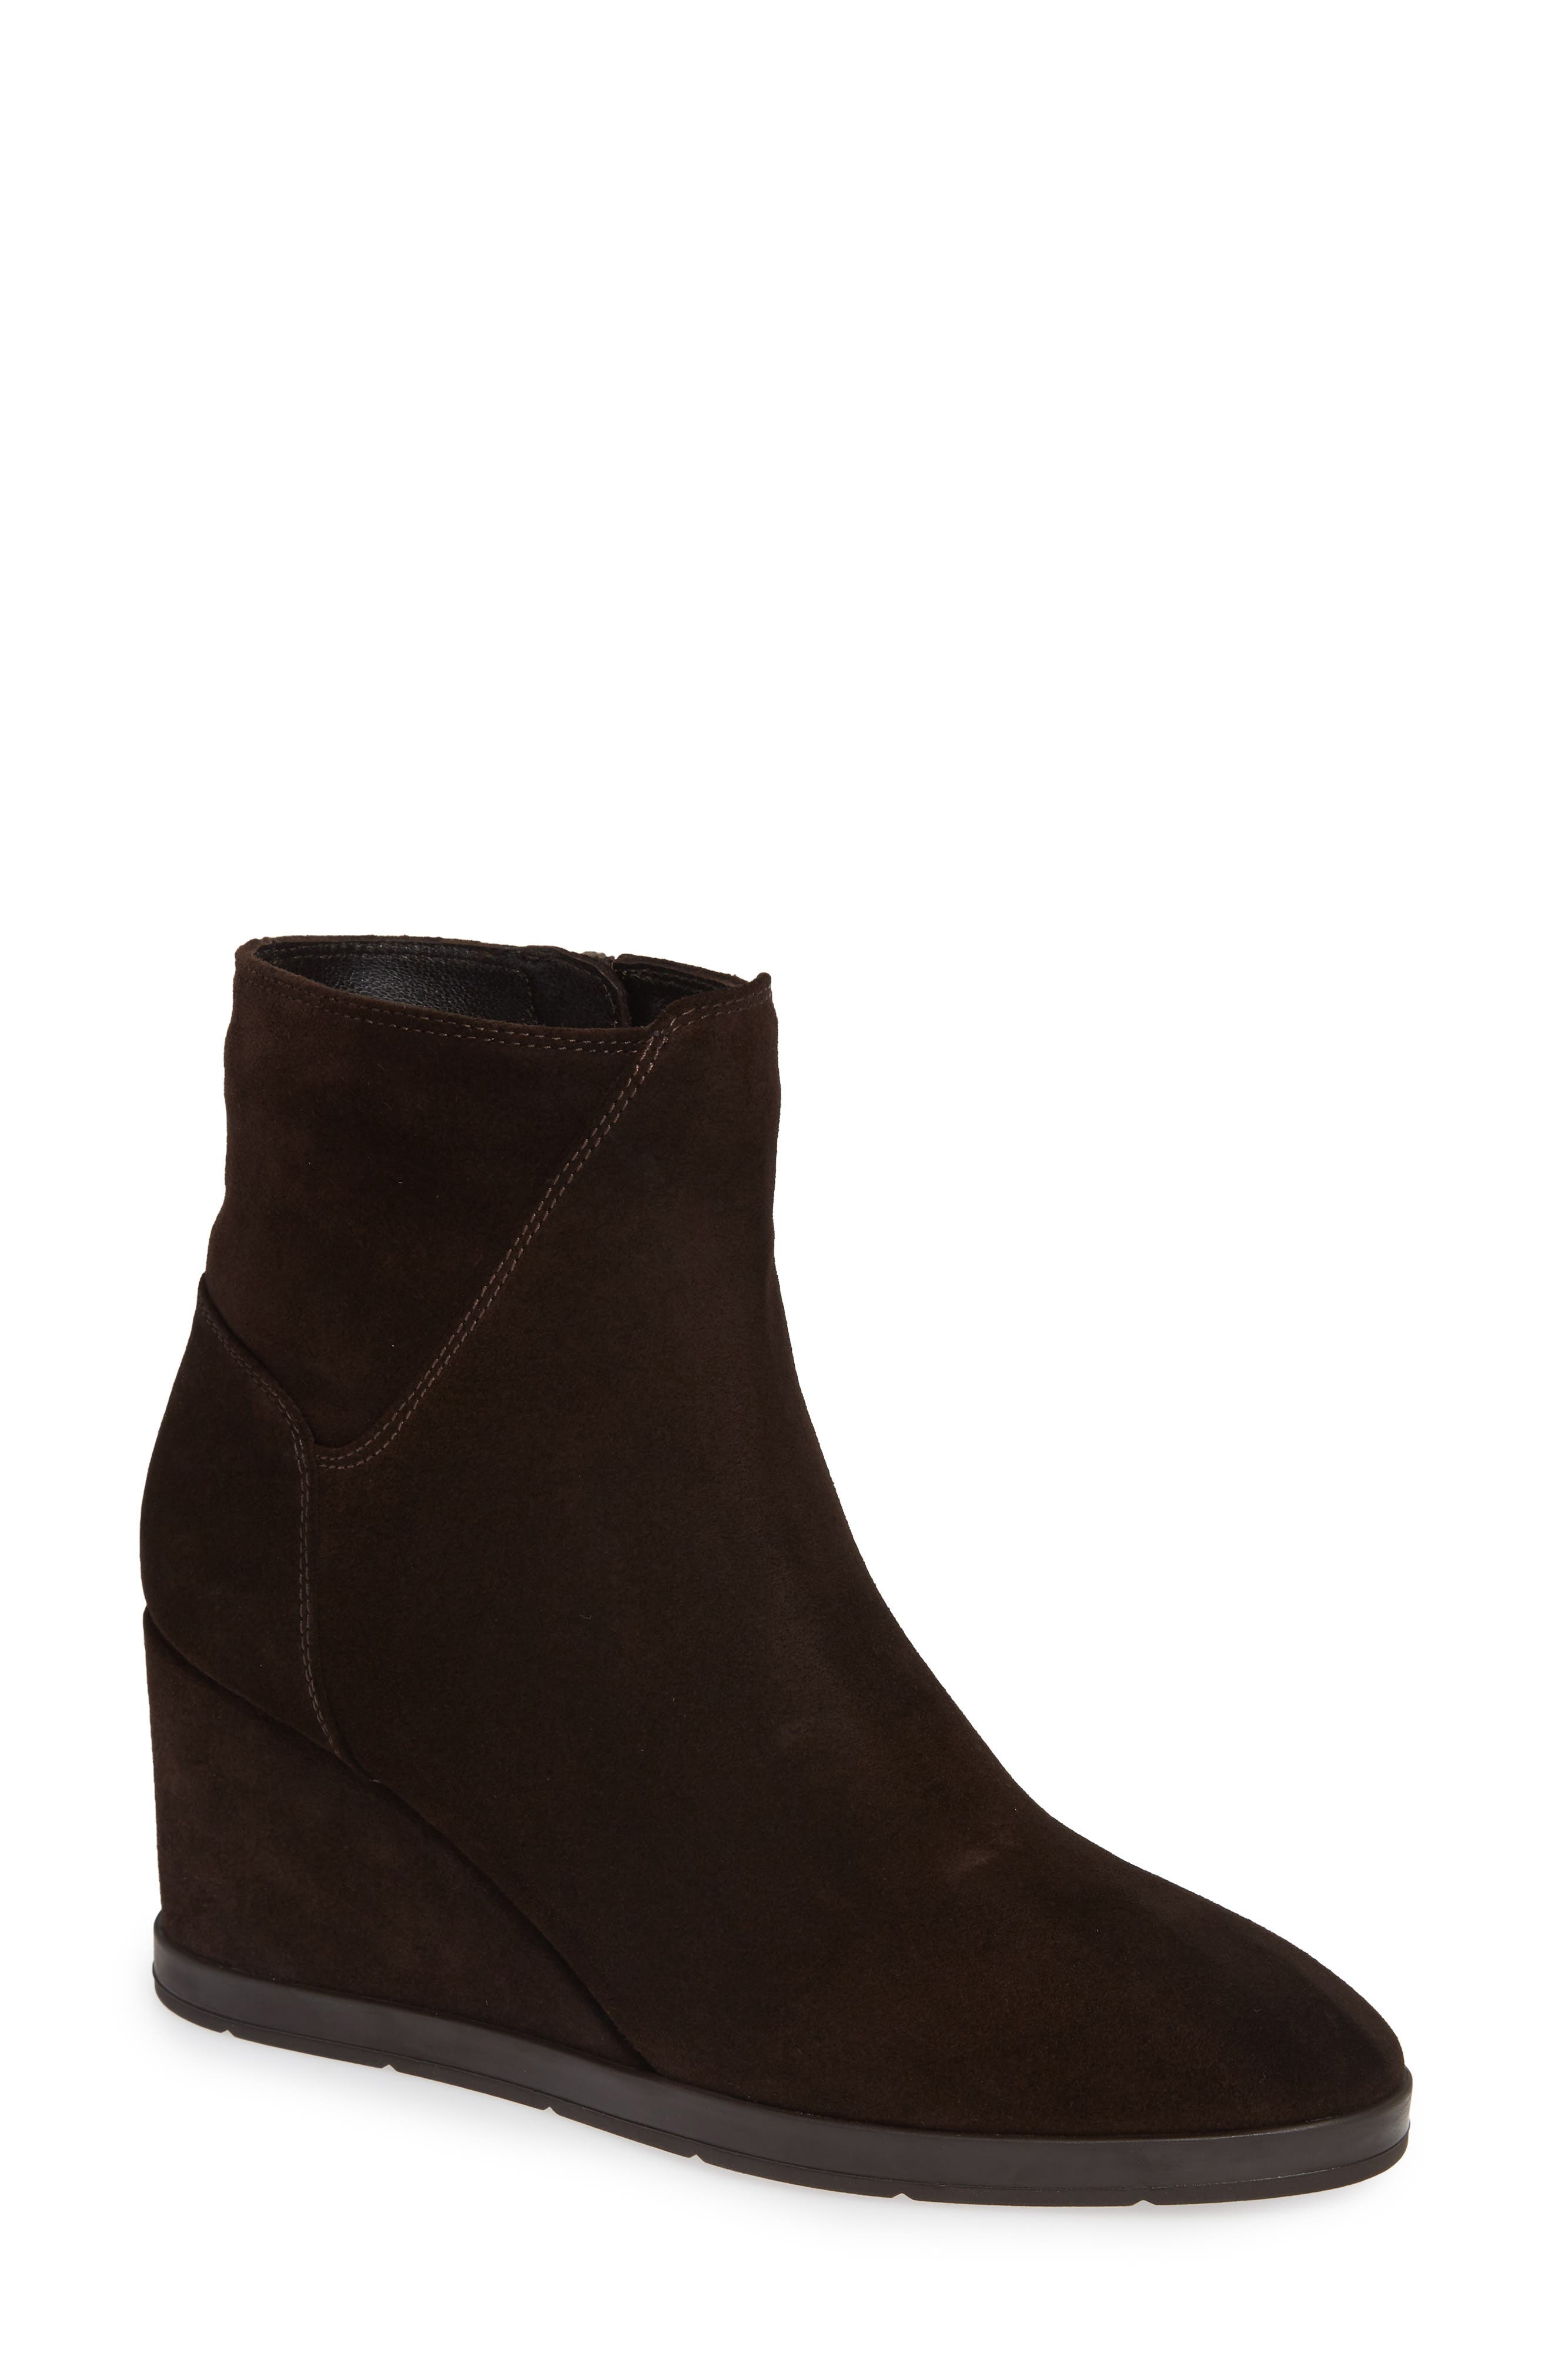 Judy Weatherproof Wedge Bootie,                             Main thumbnail 1, color,                             ESPRESSO